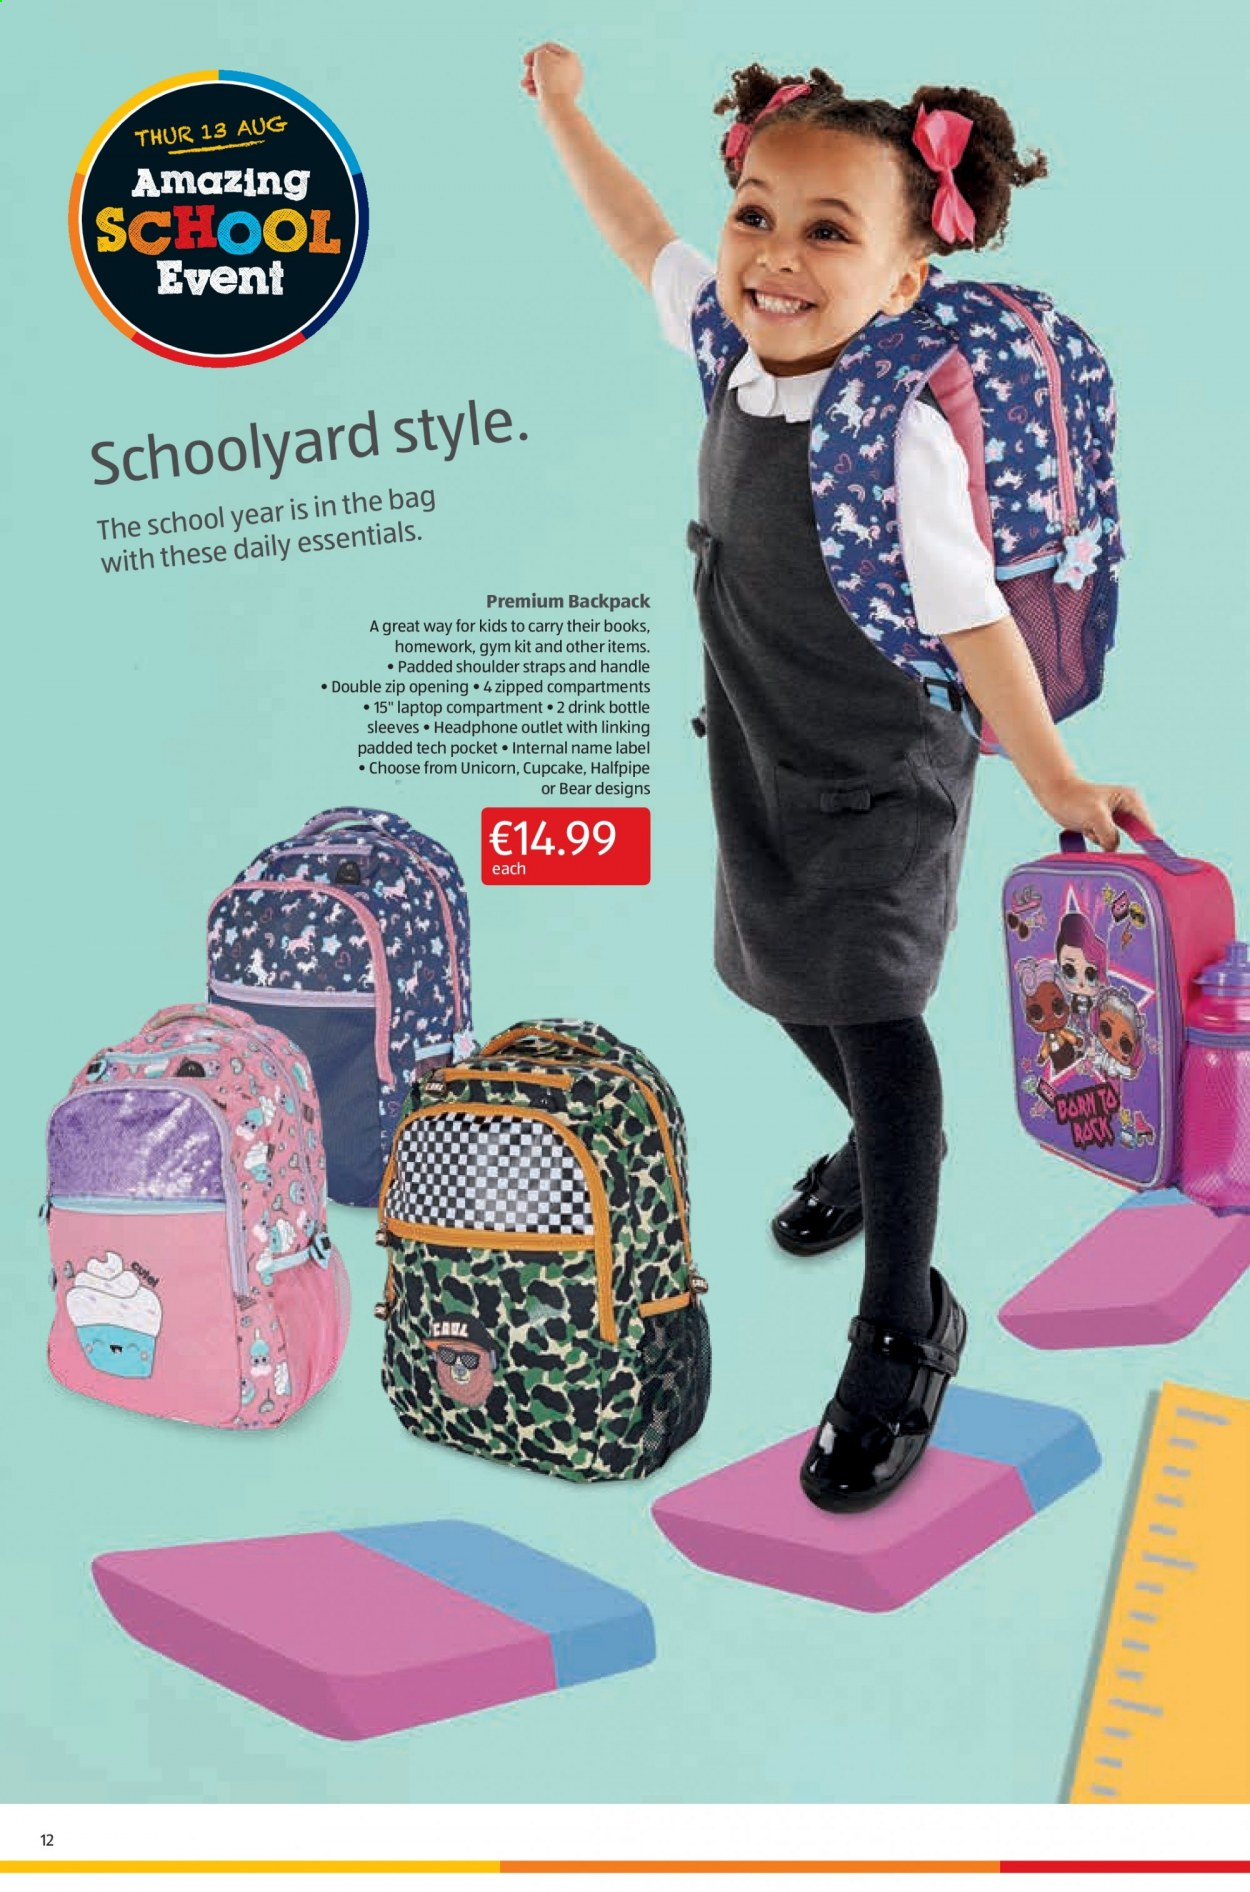 Aldi offer  - 13.8.2020 - 16.8.2020 - Sales products - backpack, bag, cupcake, cupcakes, laptop, handles, headphone, gym, drink bottle. Page 12.